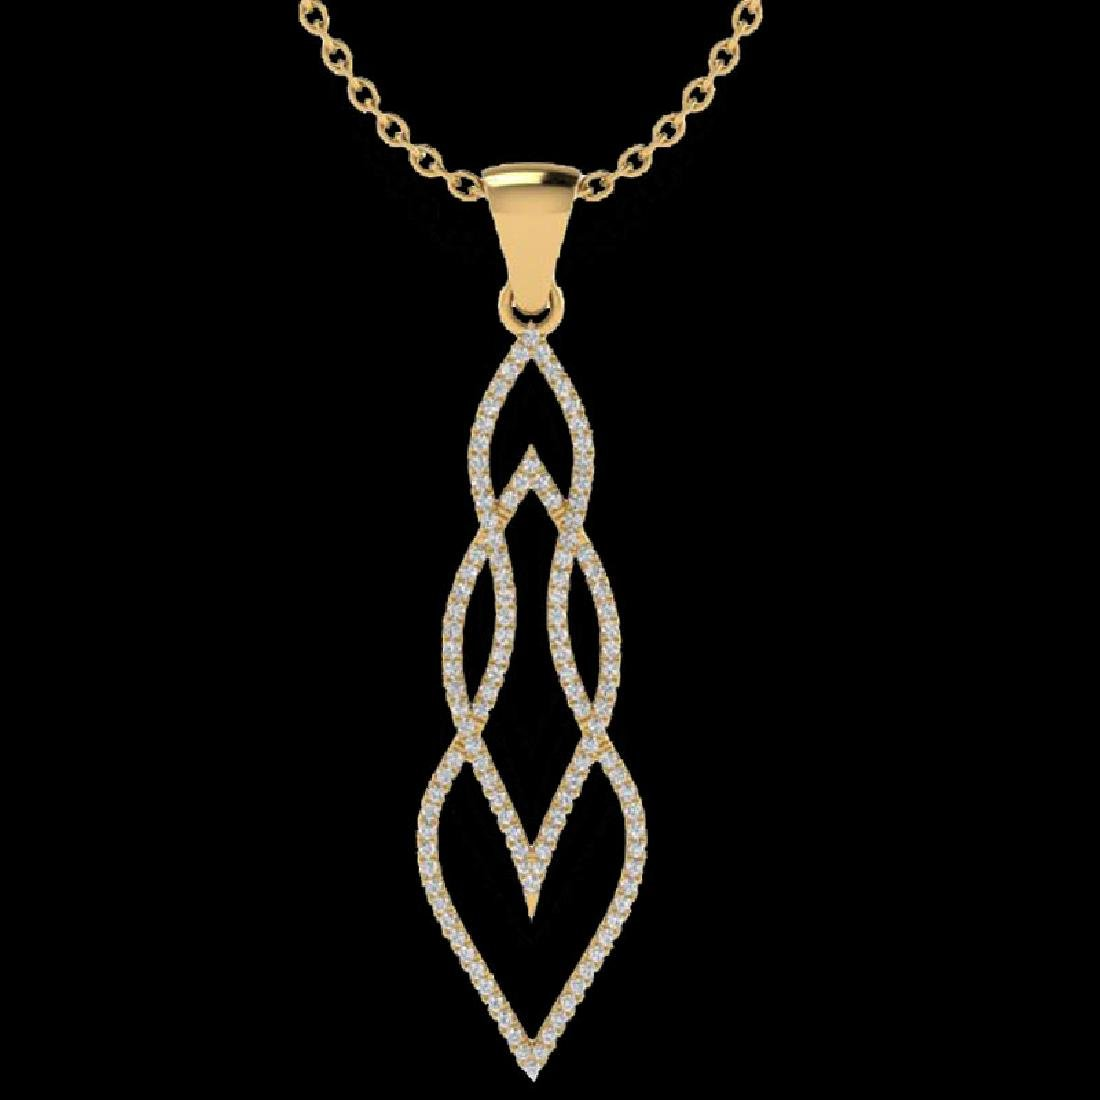 0.80 CTW Micro Pave VS/SI Diamond Necklace 14K Yellow